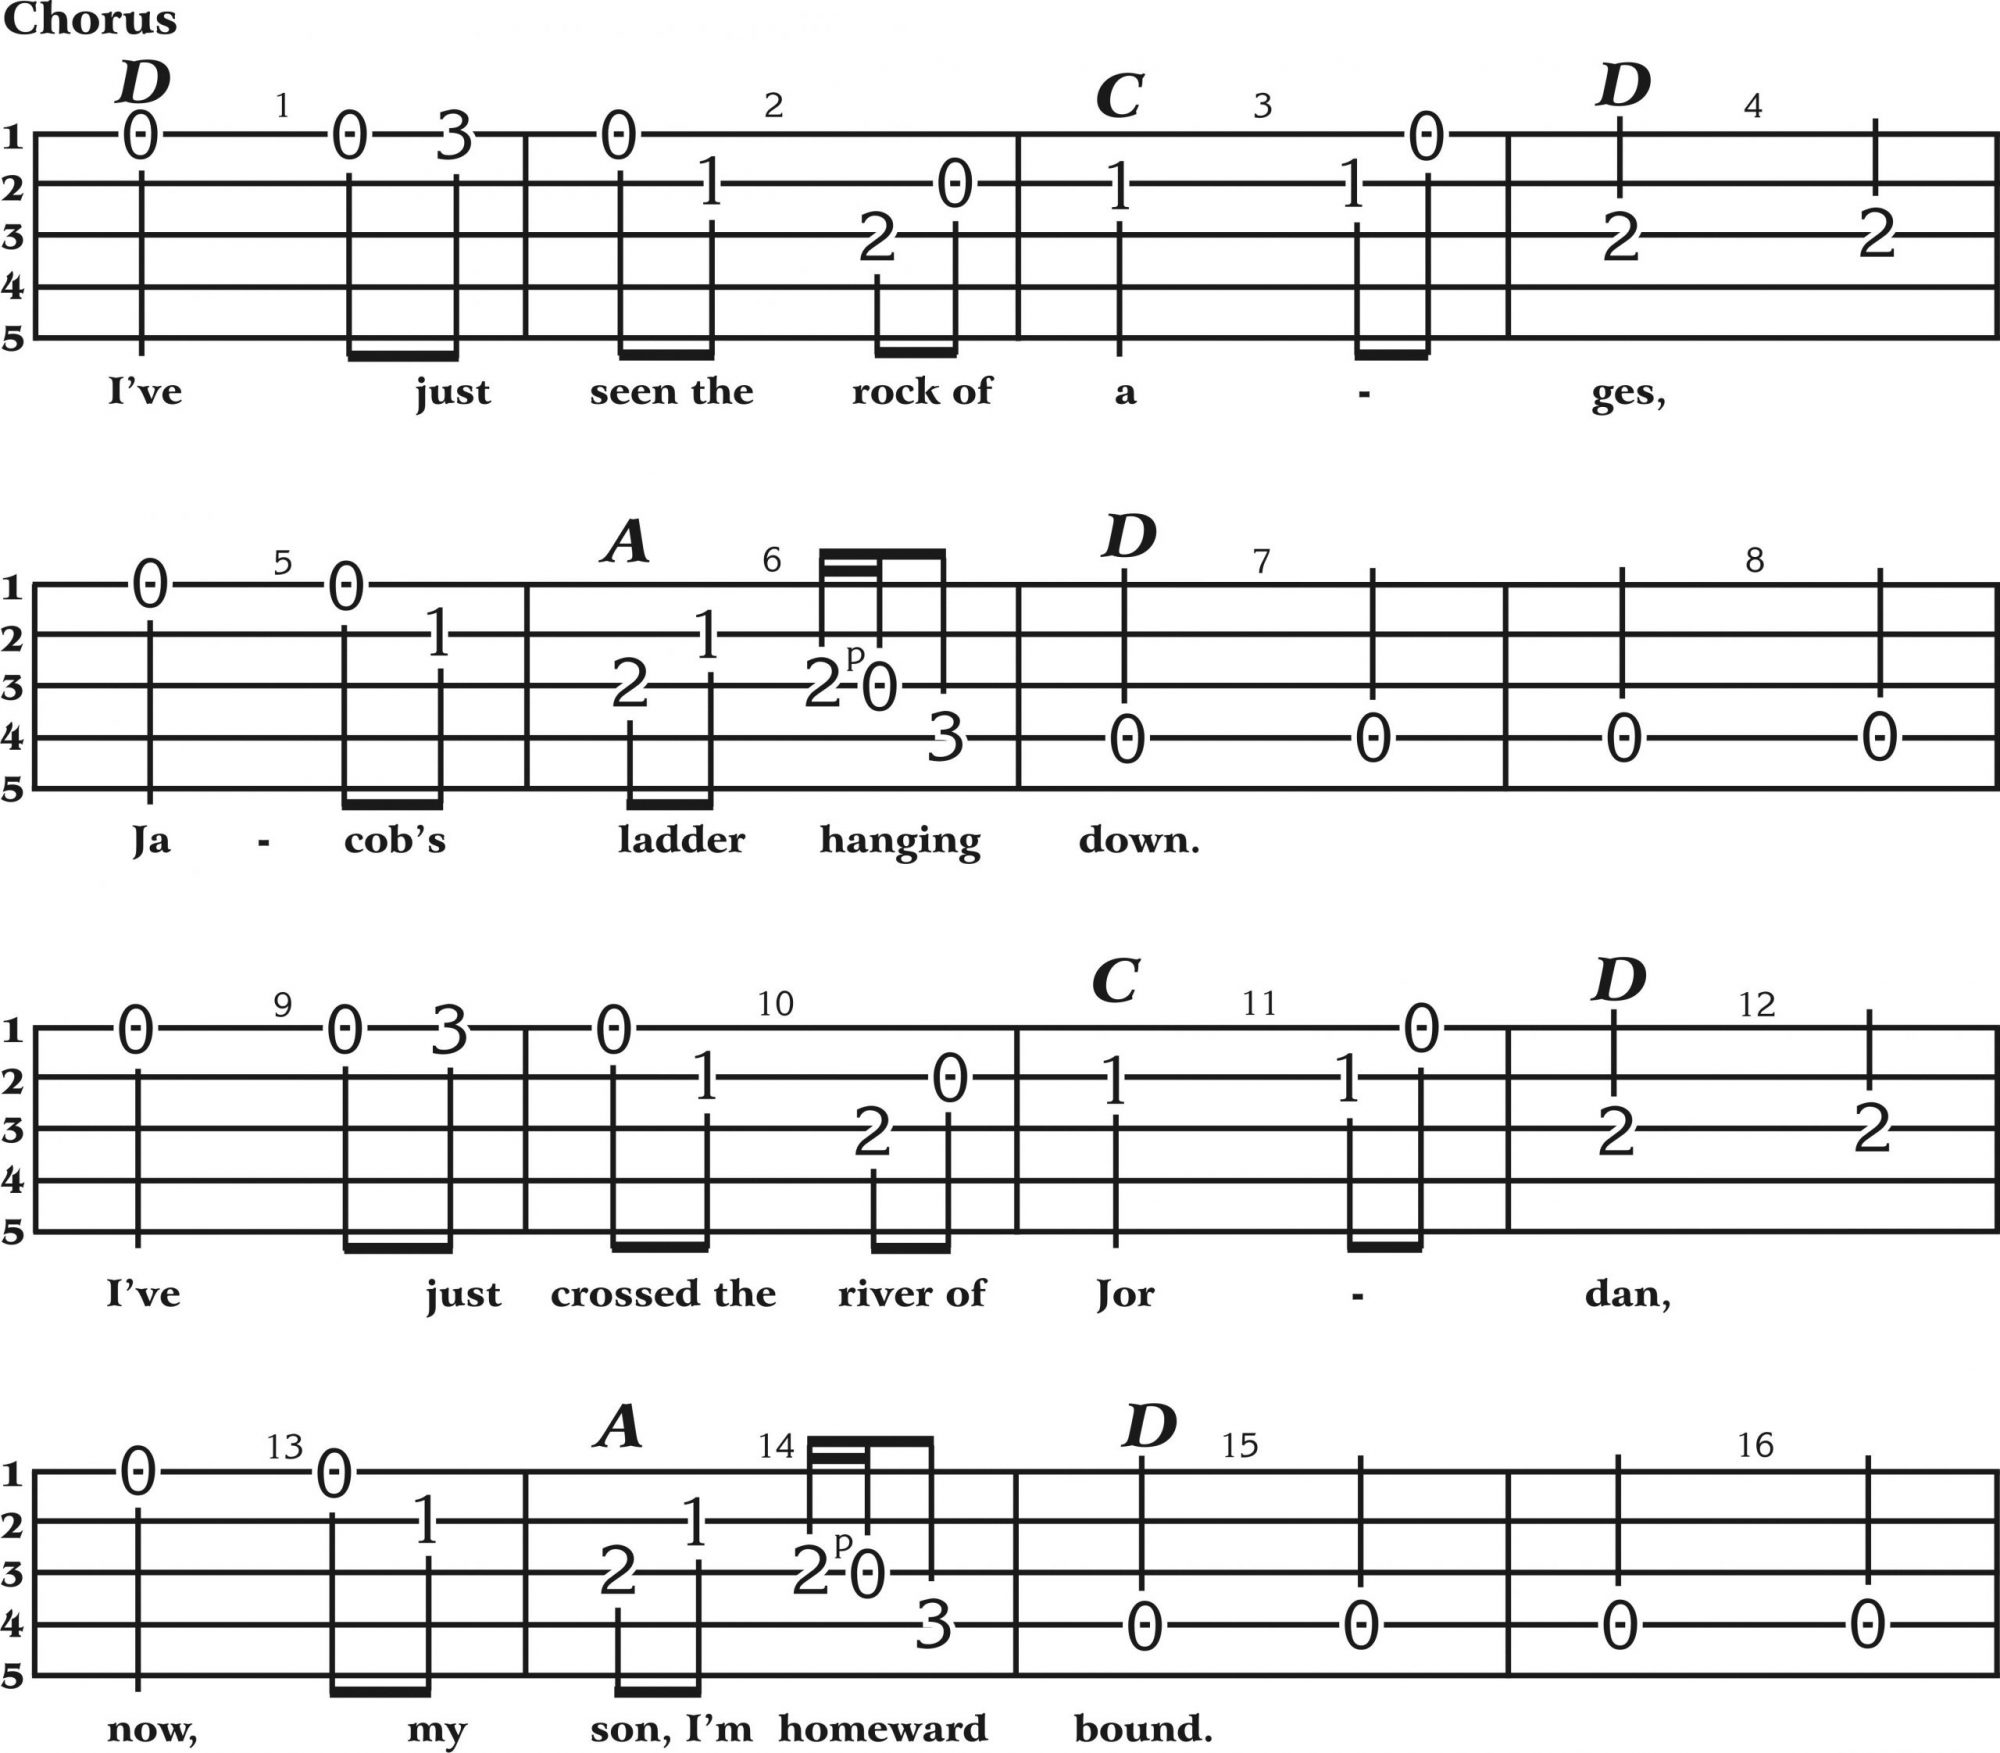 I've Just Seen the Rock of Ages banjo tab